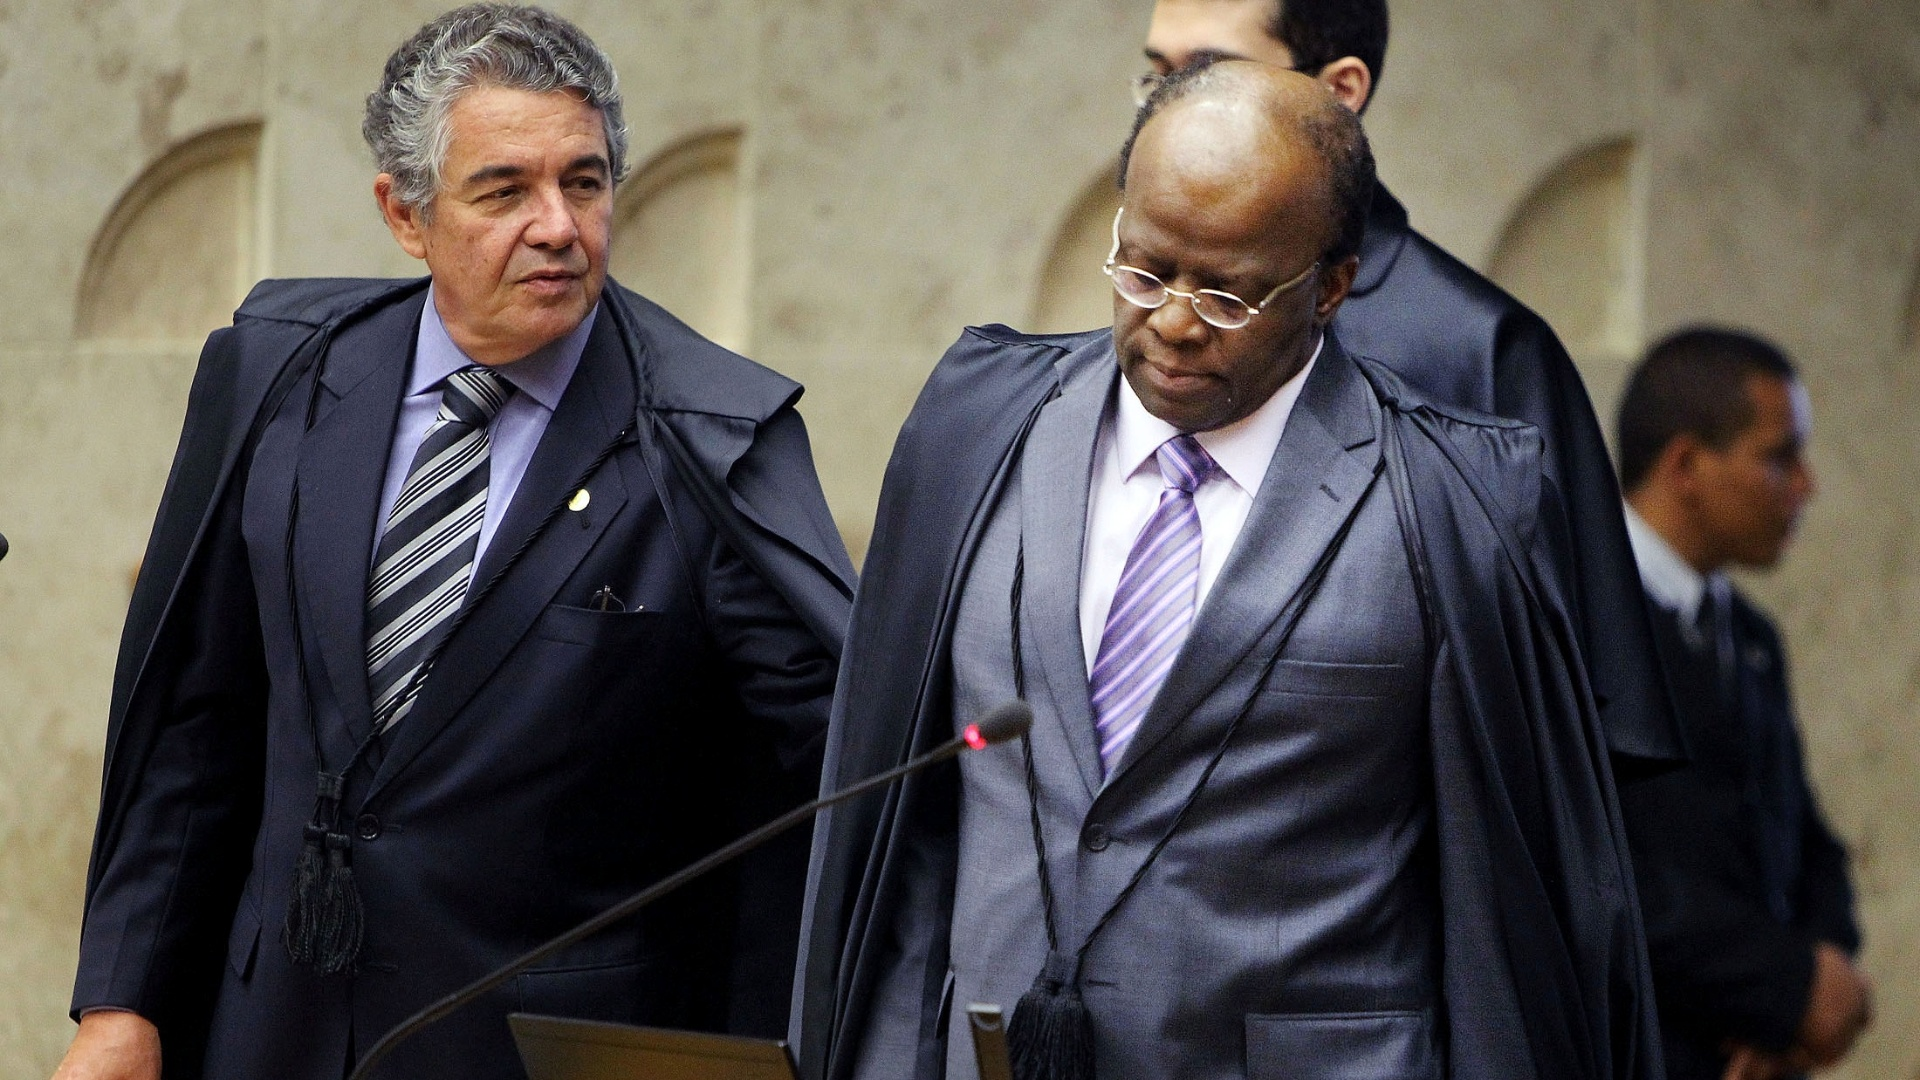 4.out.2012 - Ministros Marco Aurlio Mello e Joaquim Barbosa em sesso de julgamento do mensalo em que  votada a participao de Duda Mendona e Jos Dirceu no esquema